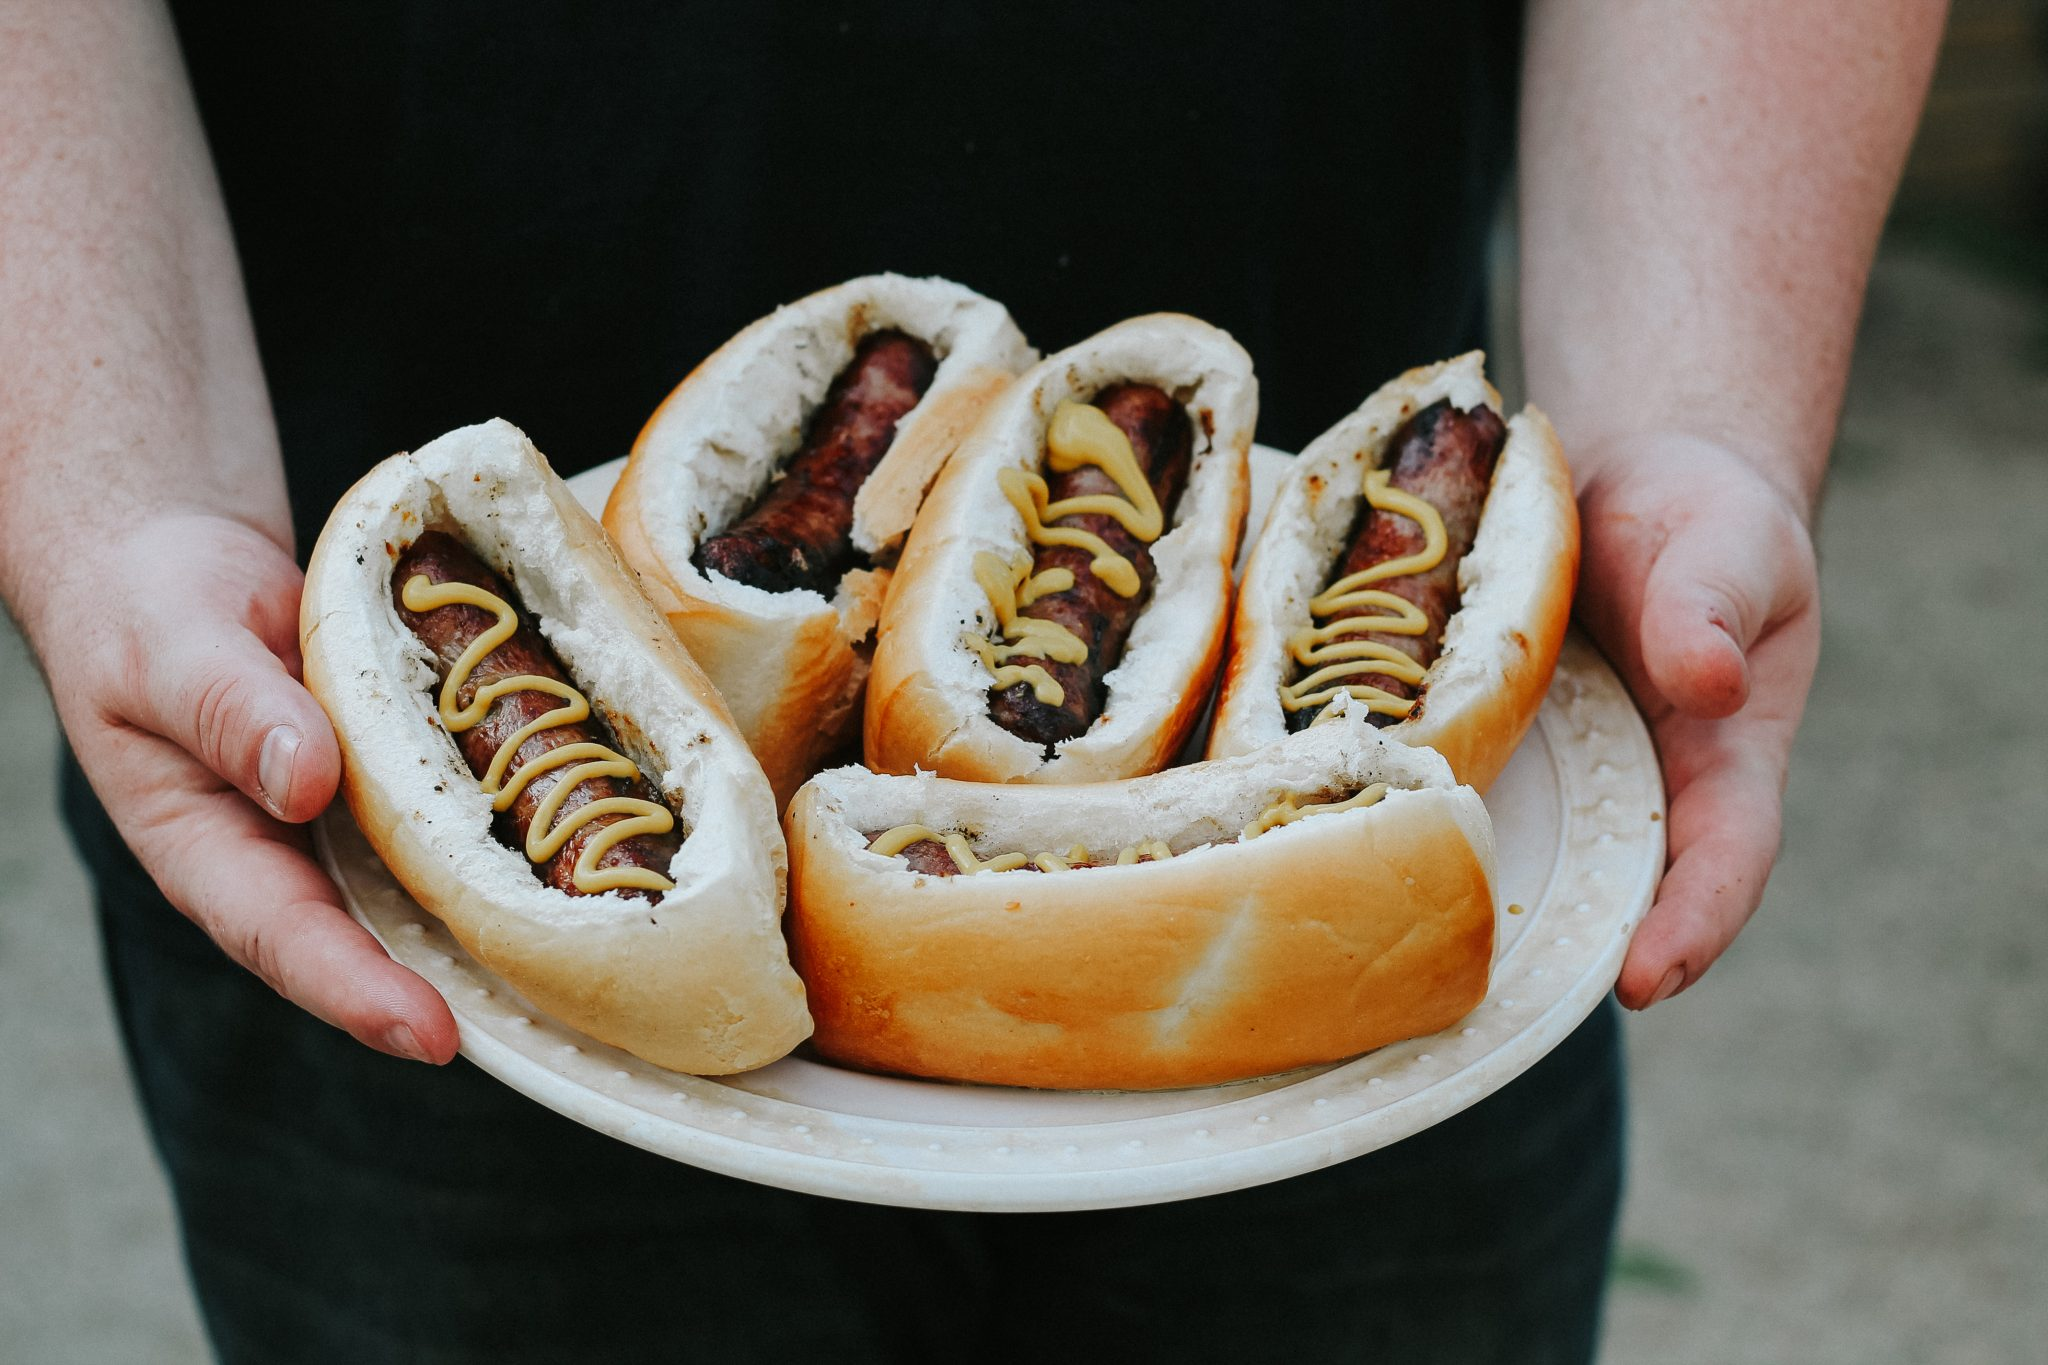 The Best Bratwurst and Beer Pairing